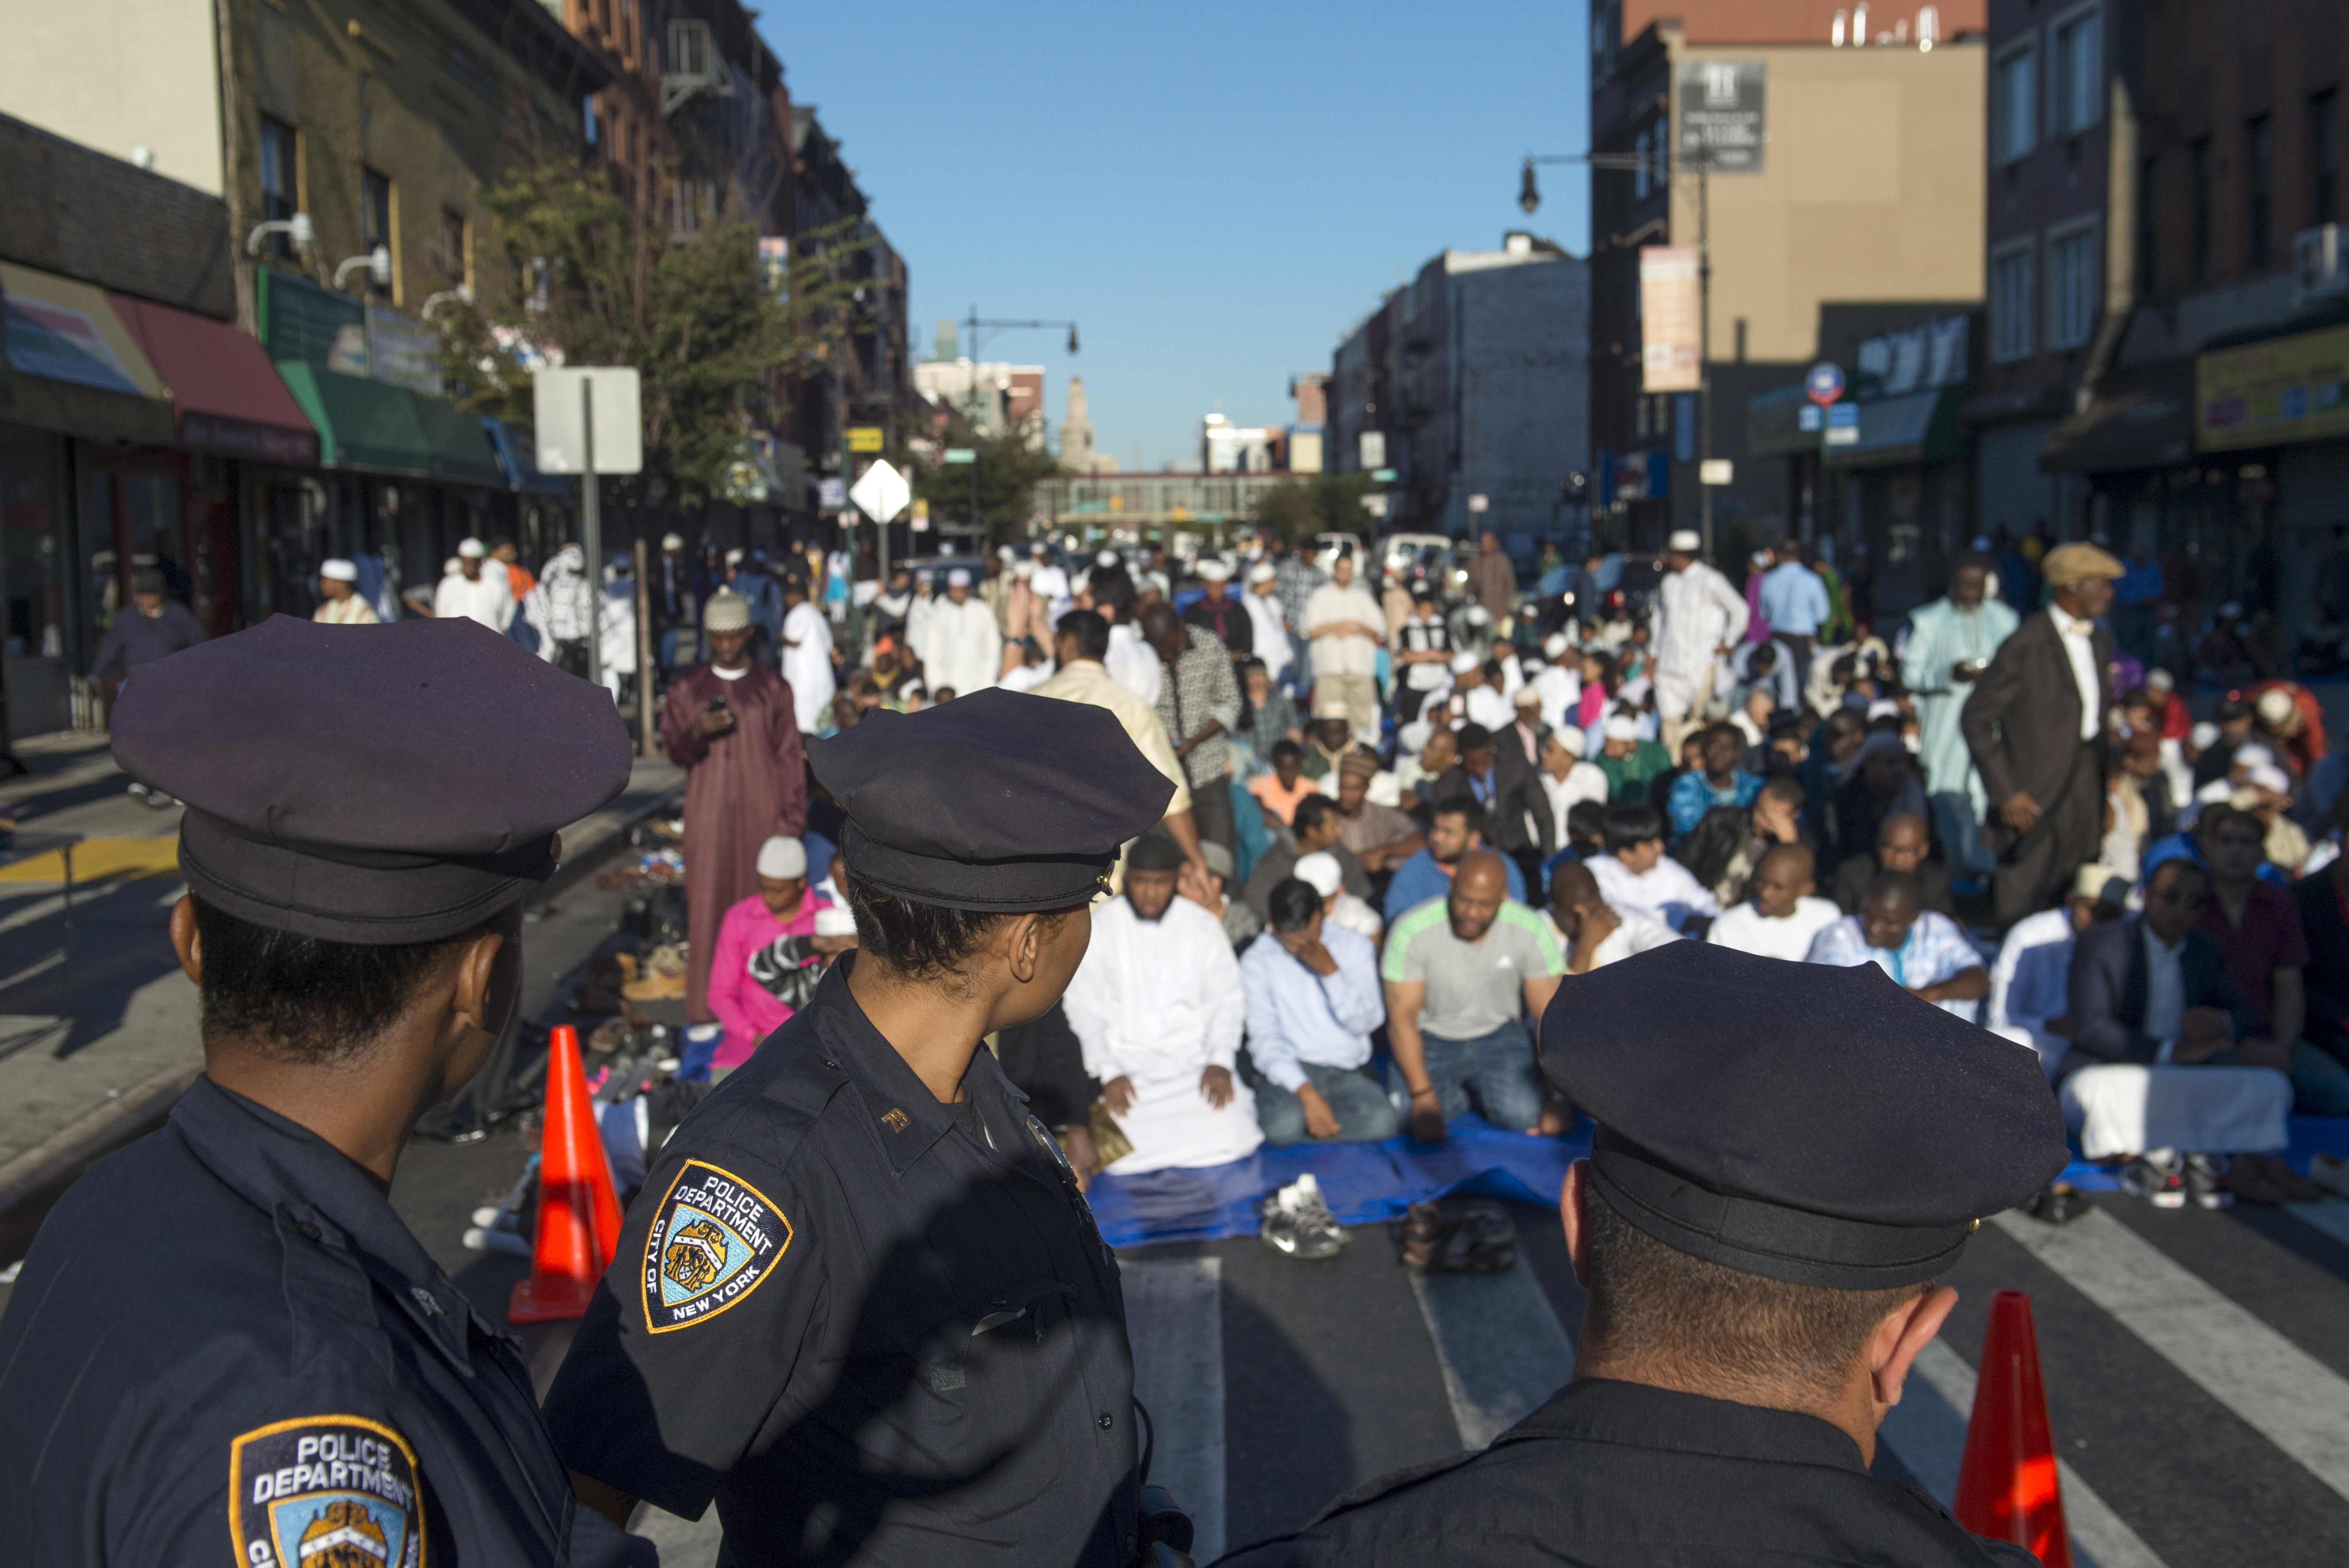 FILE - New York Police Department (NYPD) officers stand near worshippers as they gather outside the Masjid At-Taqwa mosque ahead of Eid Al-Adha prayers in the Brooklyn borough of New York, Sept. 24, 2015.